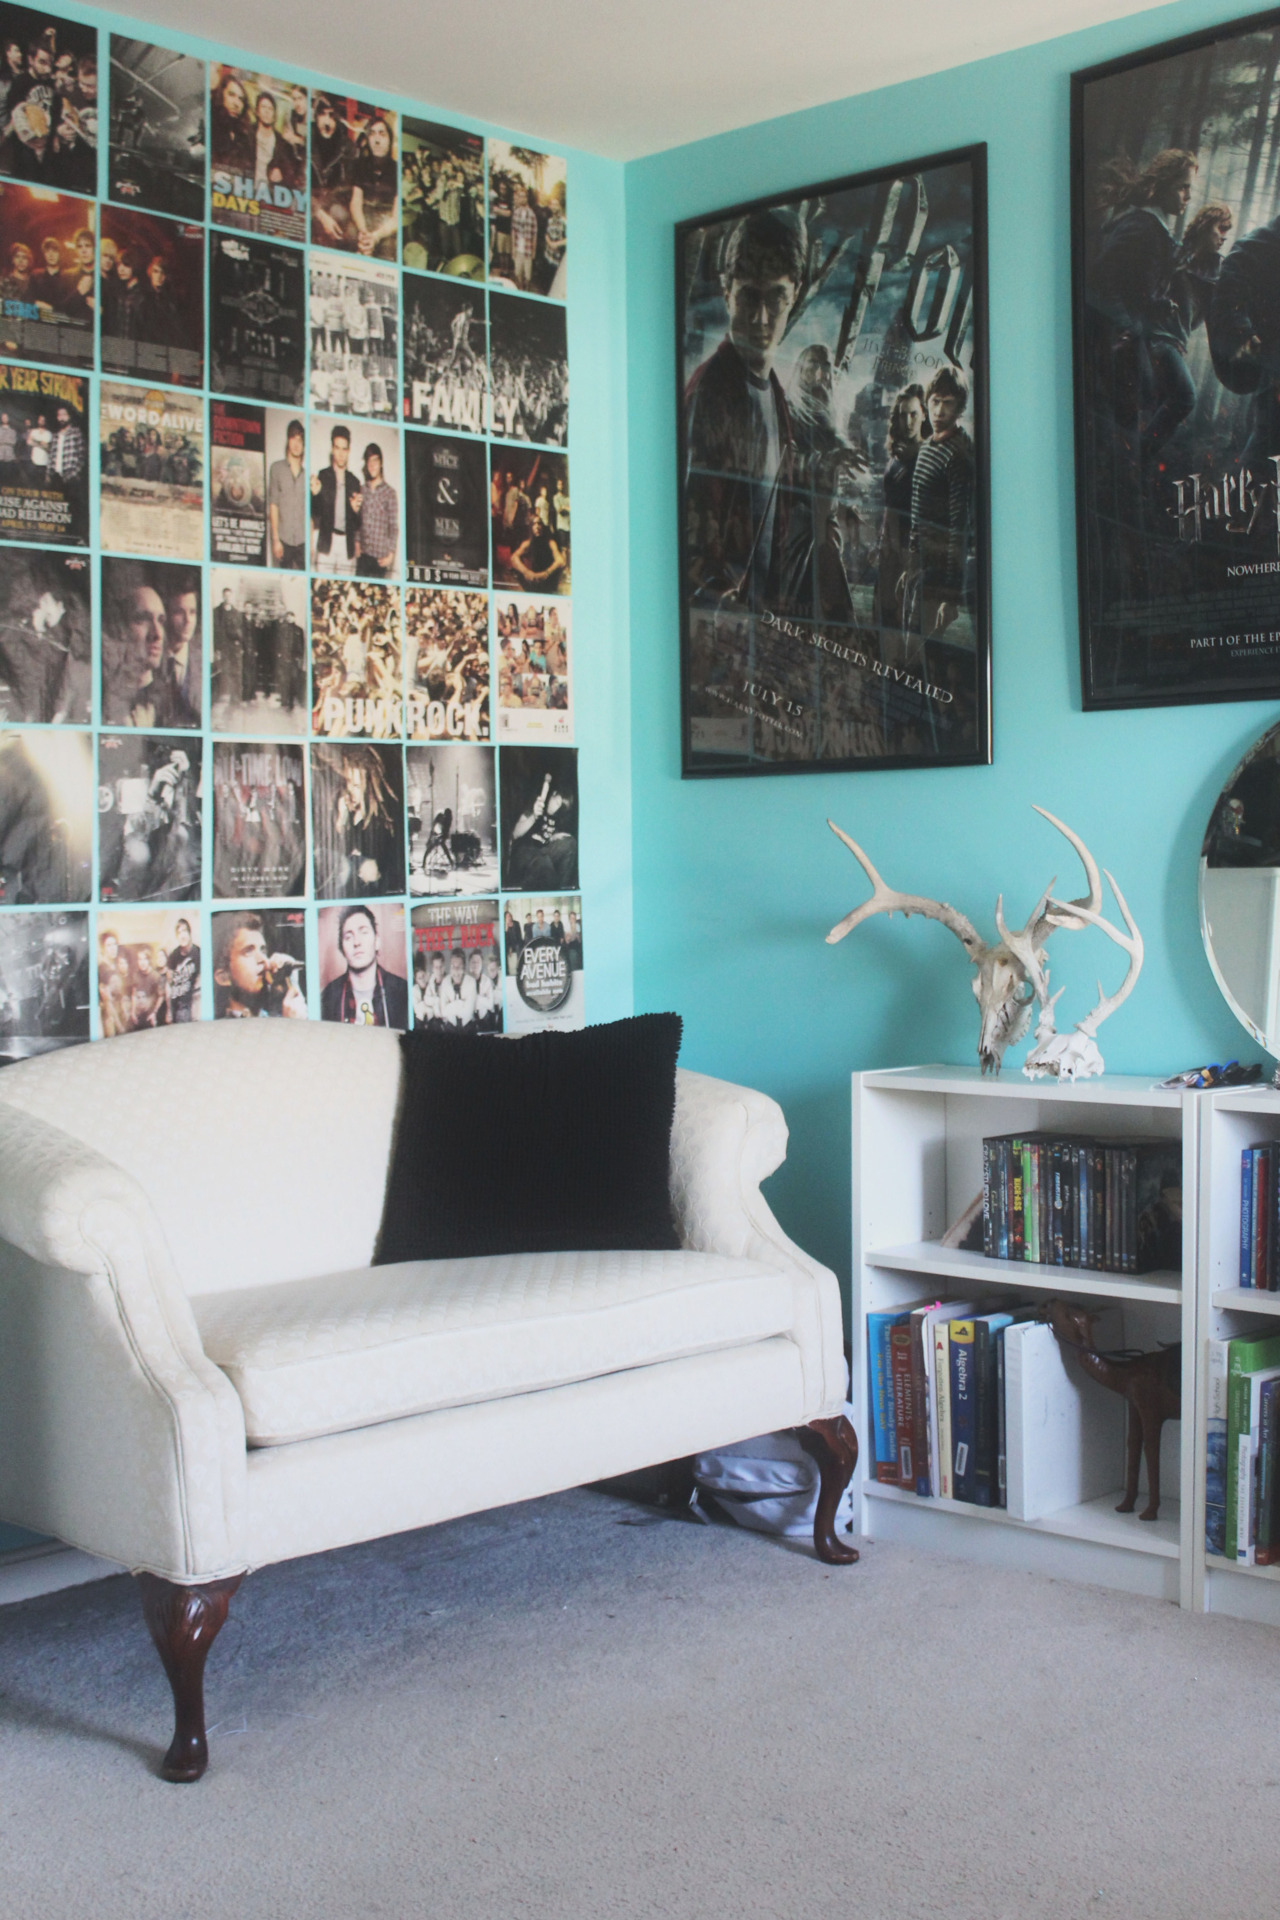 Welcome to sweet home style submitted by shannon lowe Decorating walls with posters